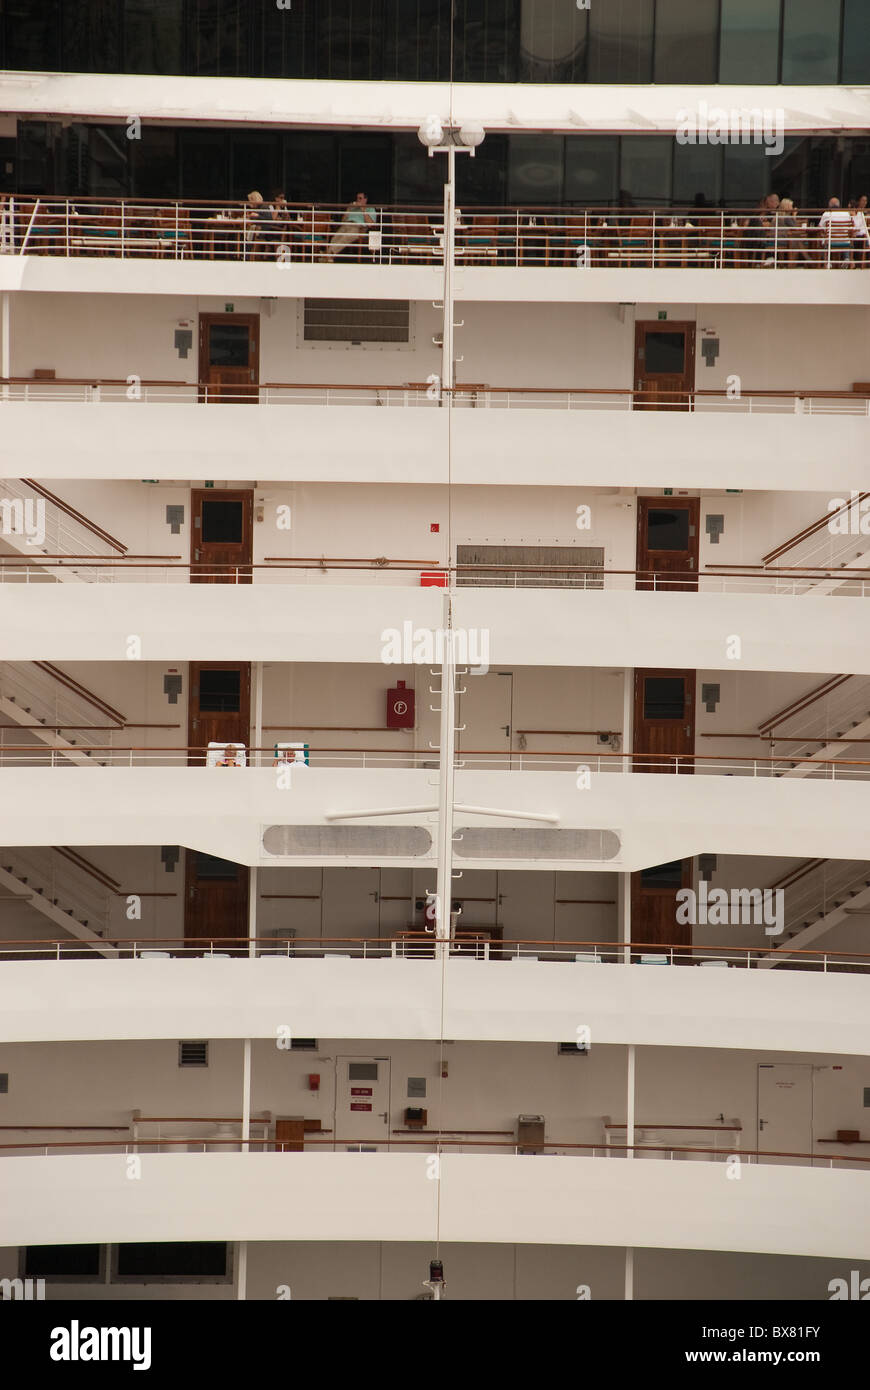 Stern view of m.v. Crystal Serenity - Stock Image